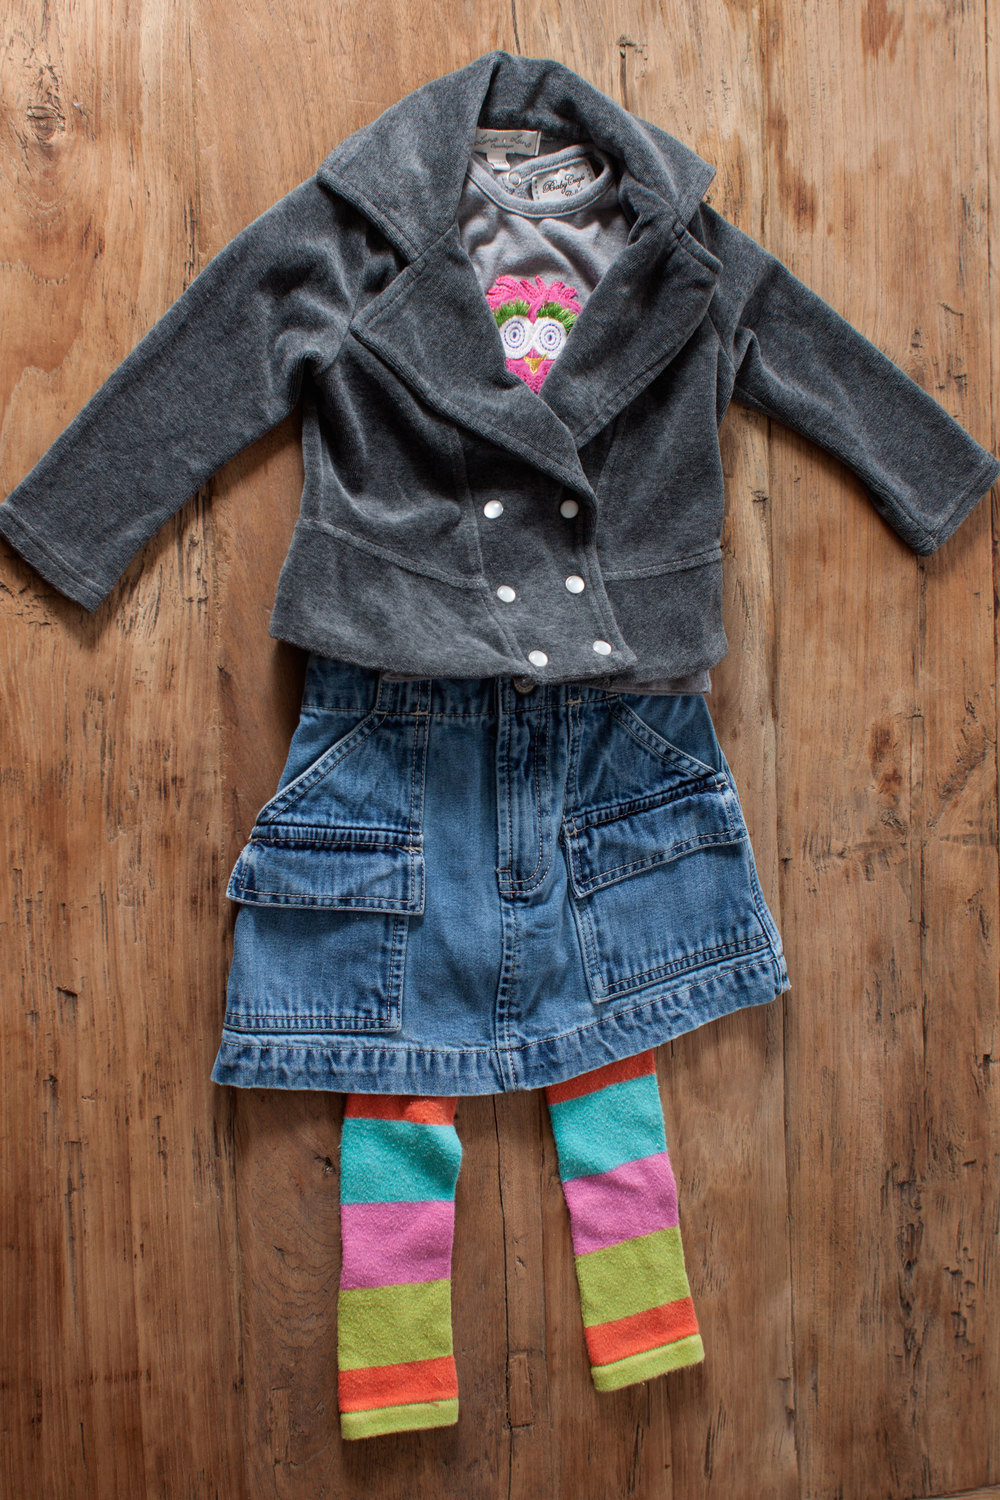 Image includes Girls Gap denim skirt. Size: 4 years. $6.50.